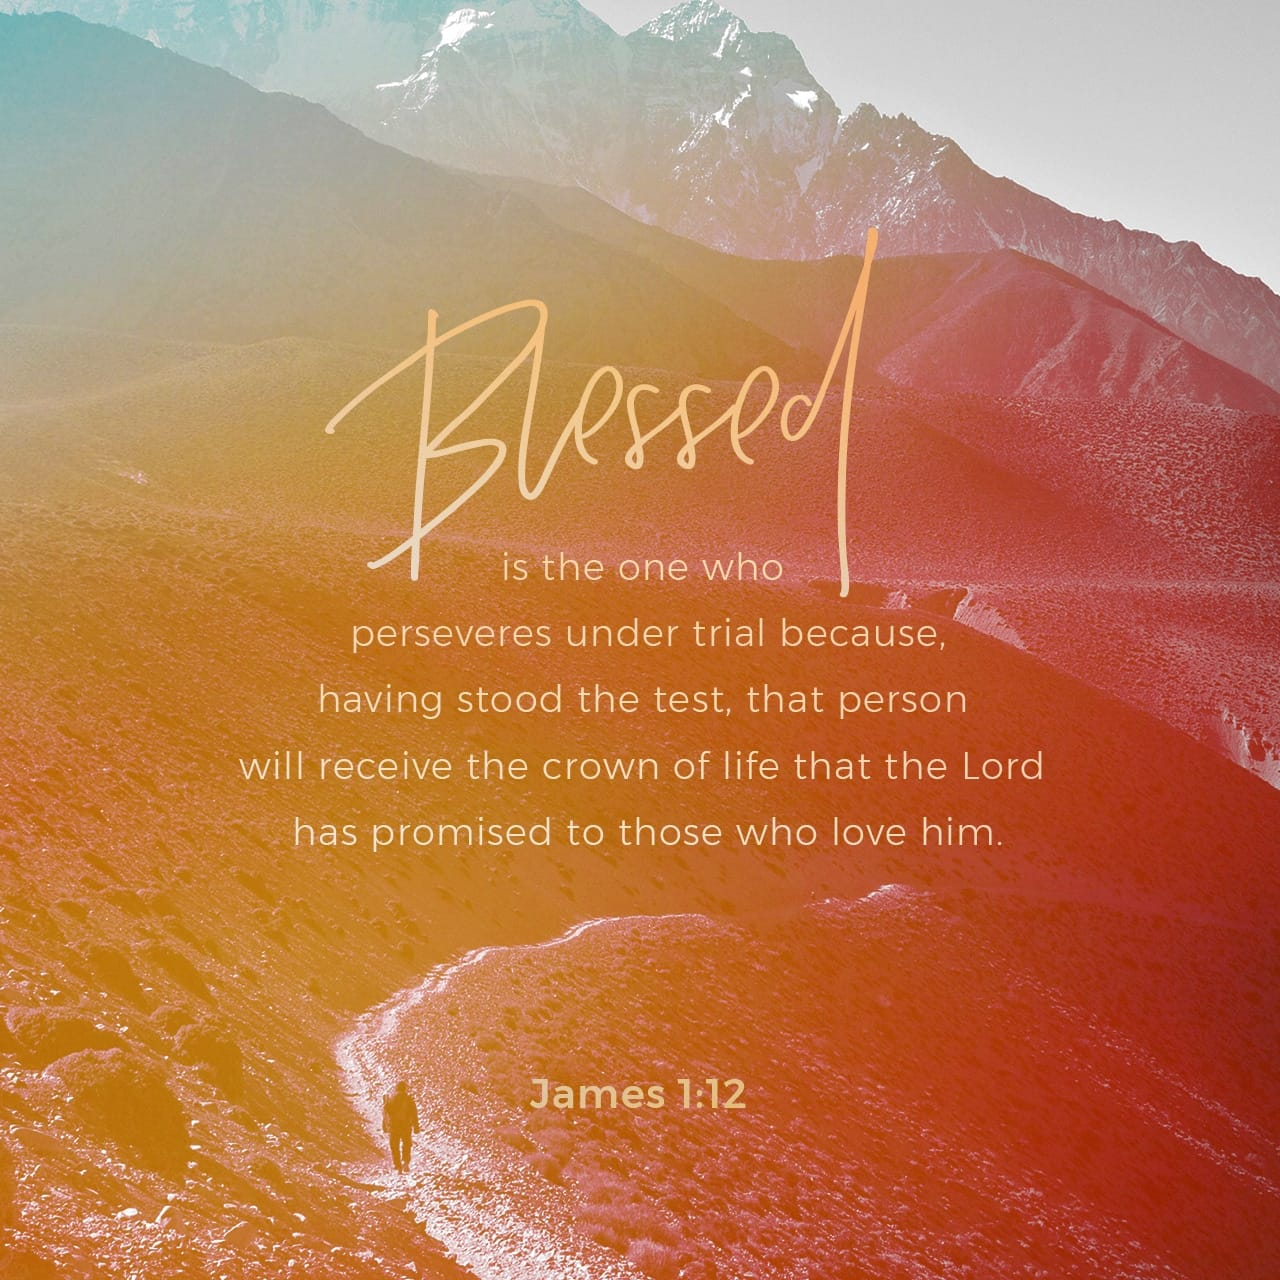 Blessed is the one who perseveres under trial - James 1:12